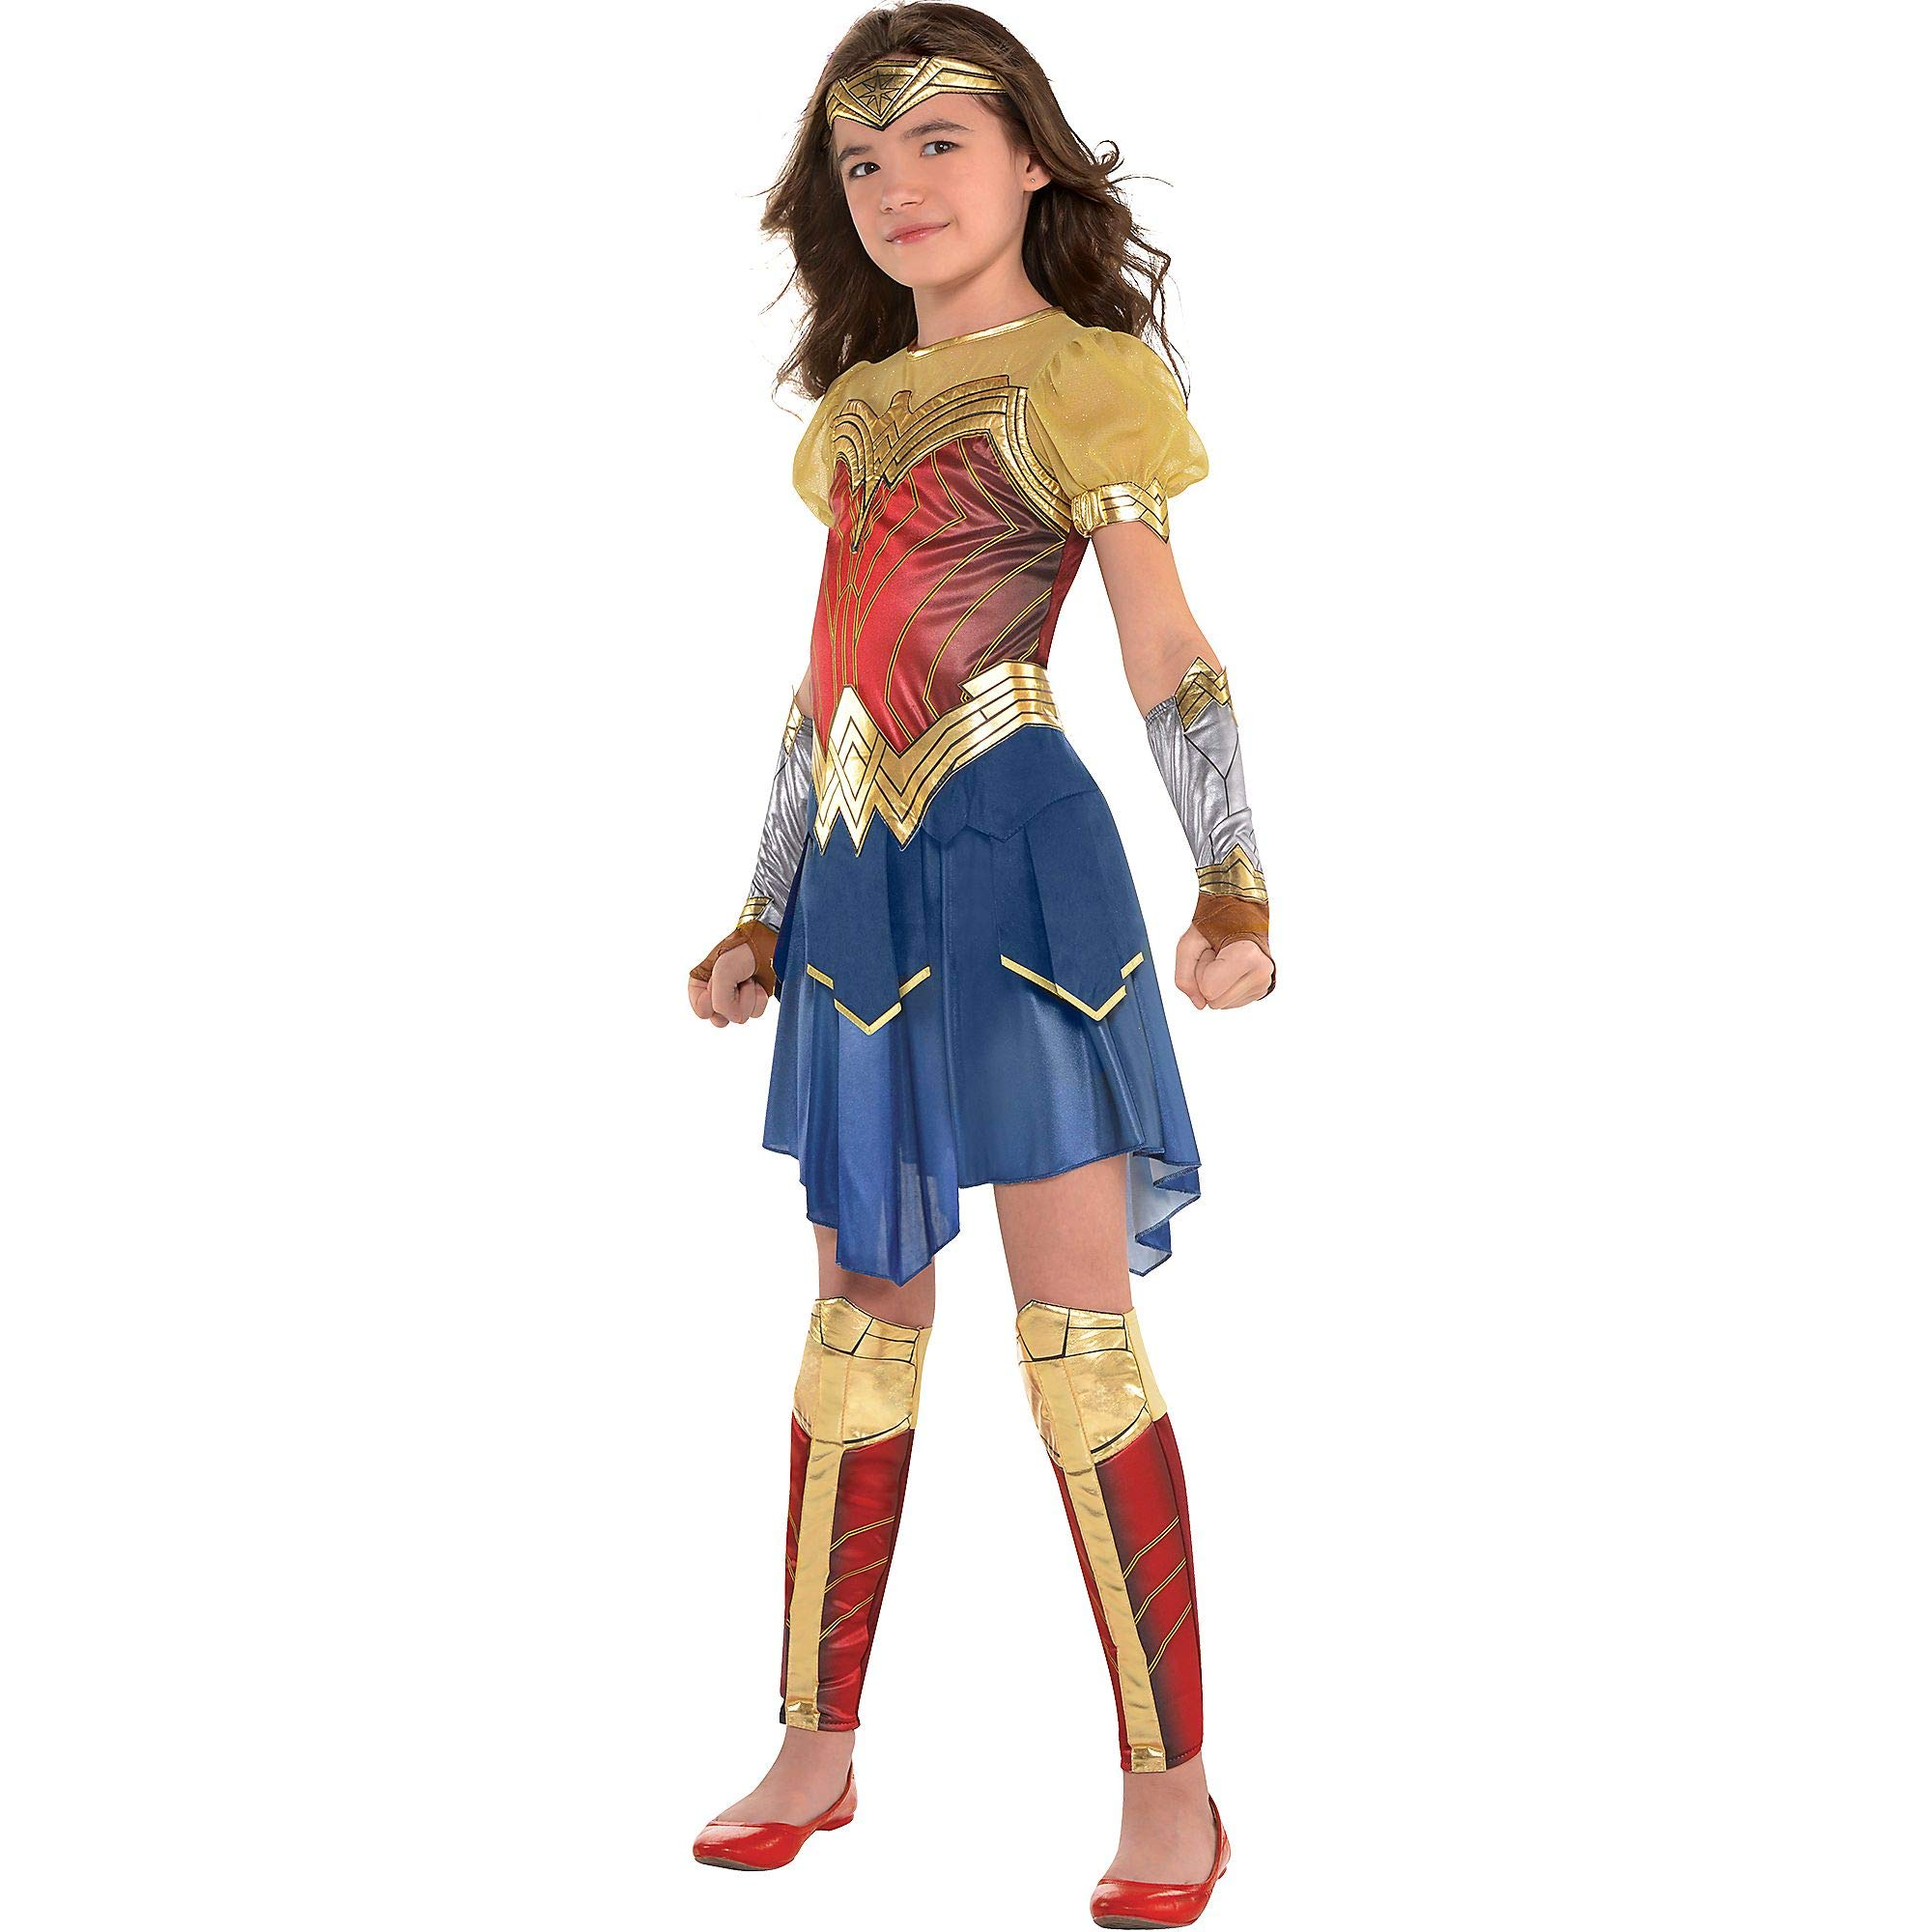 Suit Yourself Wonder Woman Movie Halloween Costume for Girls, Small, Includes Accessories